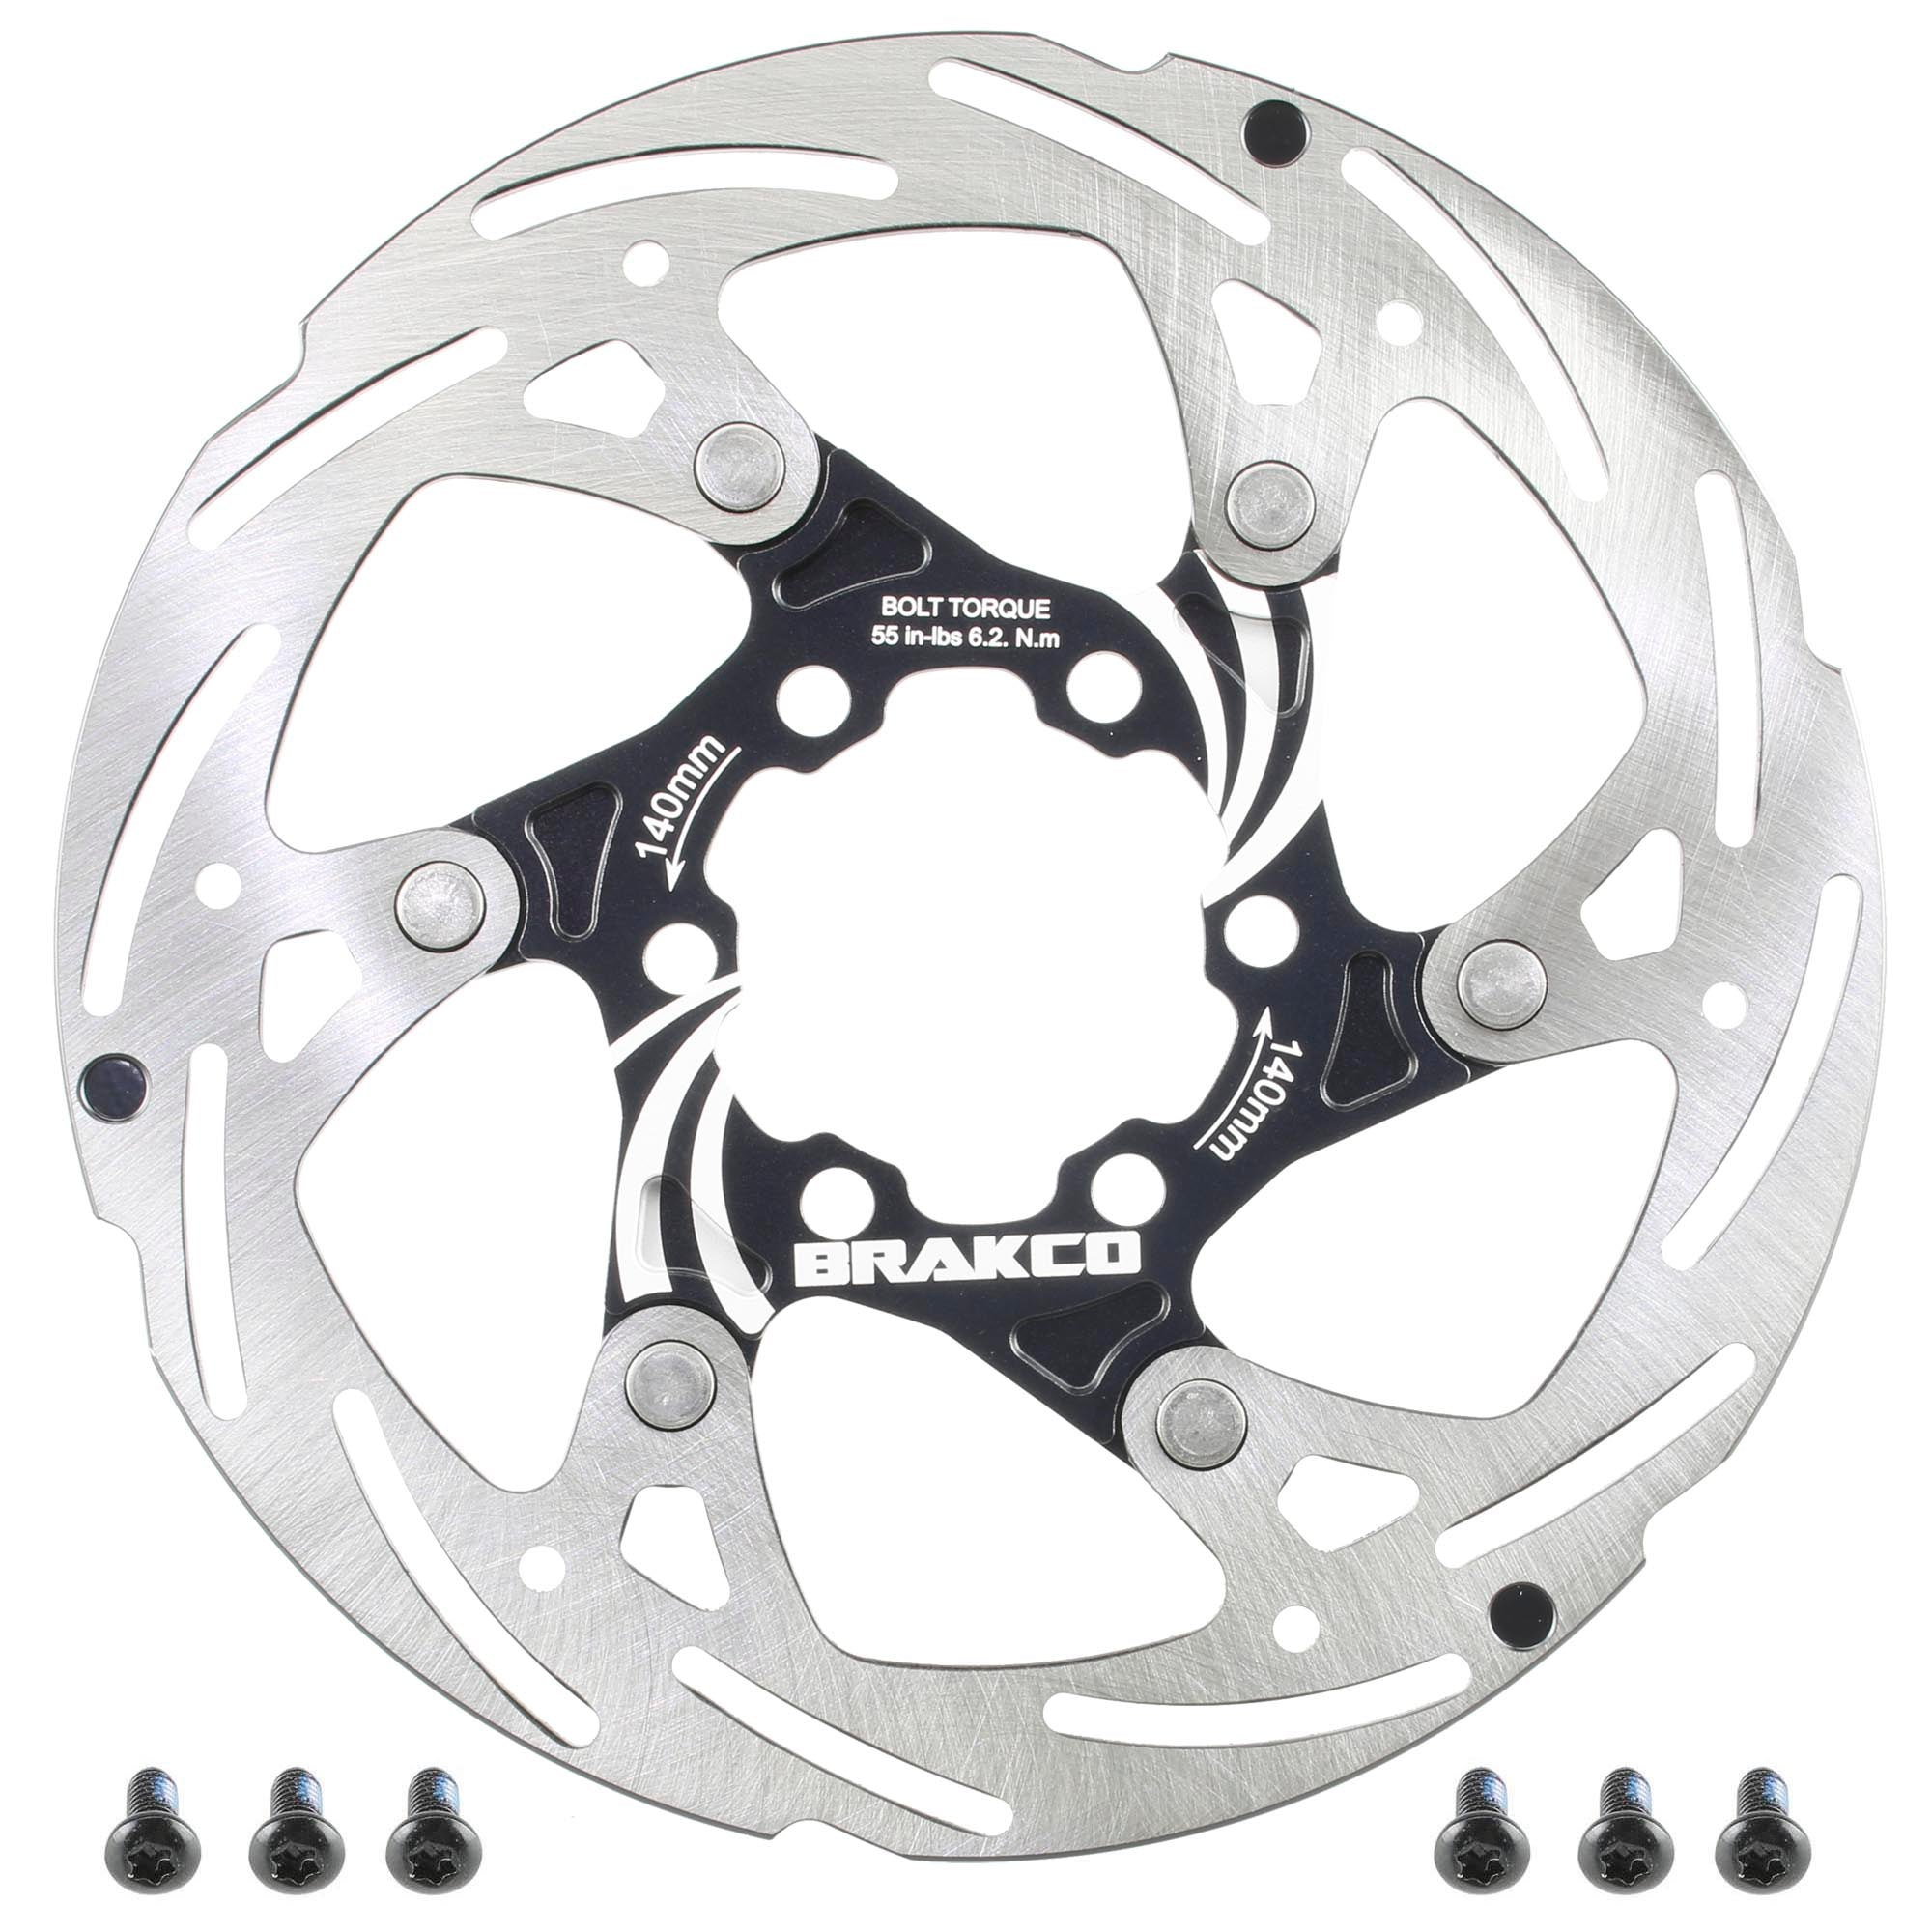 Mountain Road Bike Disc Brake AL7075 Folating Stainless Rotor 6 bolts 140mm